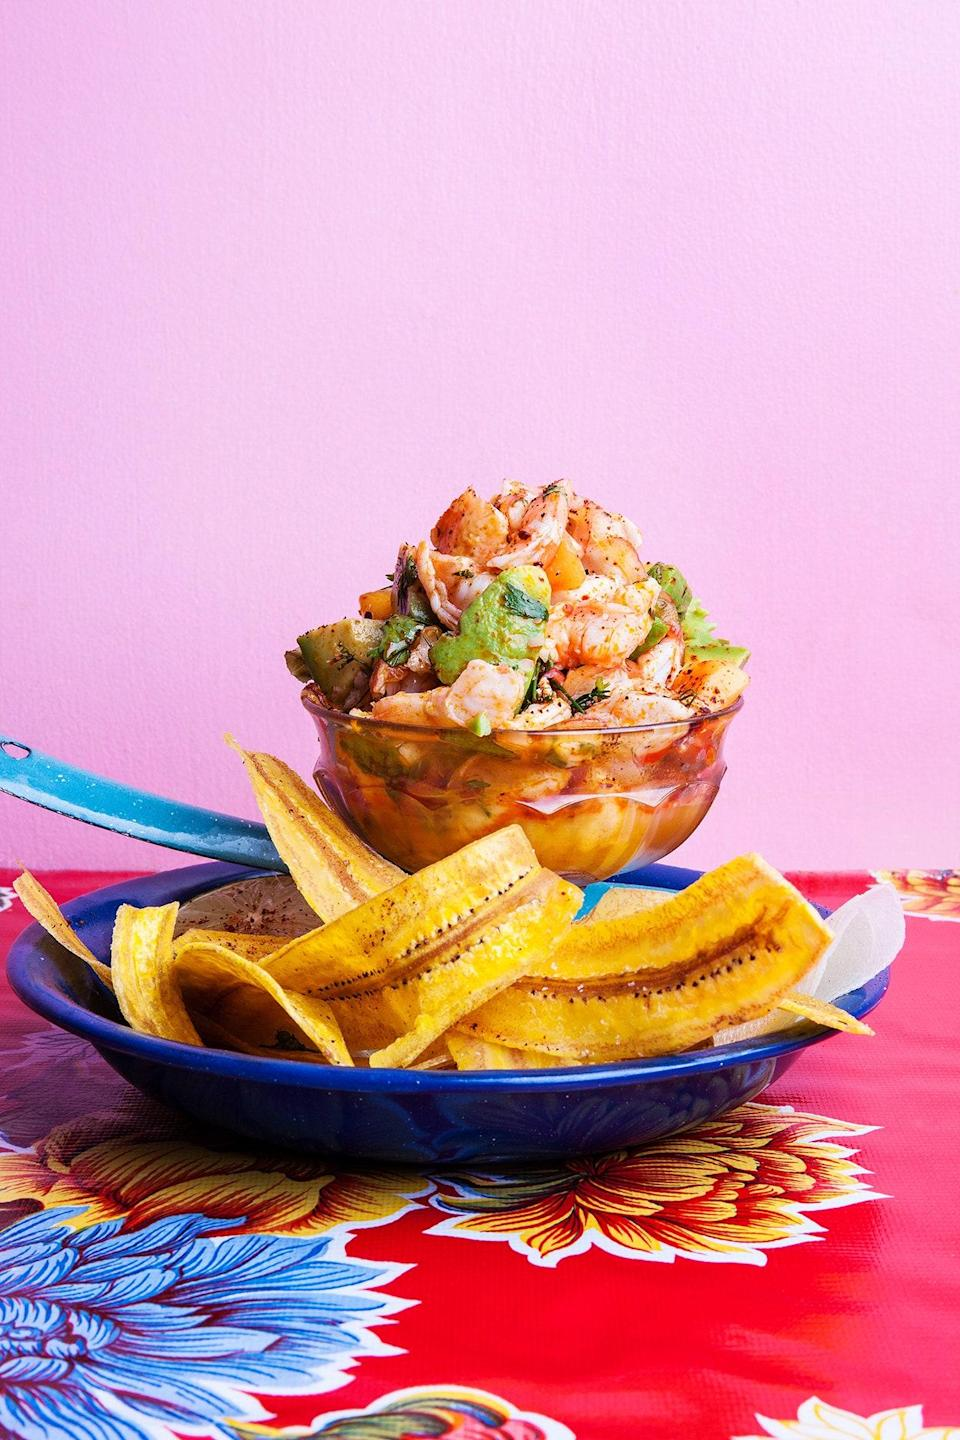 """""""As soon as it's above 80 degrees I want nothing to do with heating my food, so I'll be making this Red Snapper, Shrimp, and Watermelon Ceviche recipe, no fire required. Serving on any crispy vehicle like plantain, tortilla, cassava chips is super satisfying. And if anyone asks, yes, cooking with acid is still cooking!"""" <em>—Phillip Cheng, supervising producer</em> <a href=""""https://www.bonappetit.com/recipe/red-snapper-shrimp-and-watermelon-ceviche?mbid=synd_yahoo_rss"""" rel=""""nofollow noopener"""" target=""""_blank"""" data-ylk=""""slk:See recipe."""" class=""""link rapid-noclick-resp"""">See recipe.</a>"""